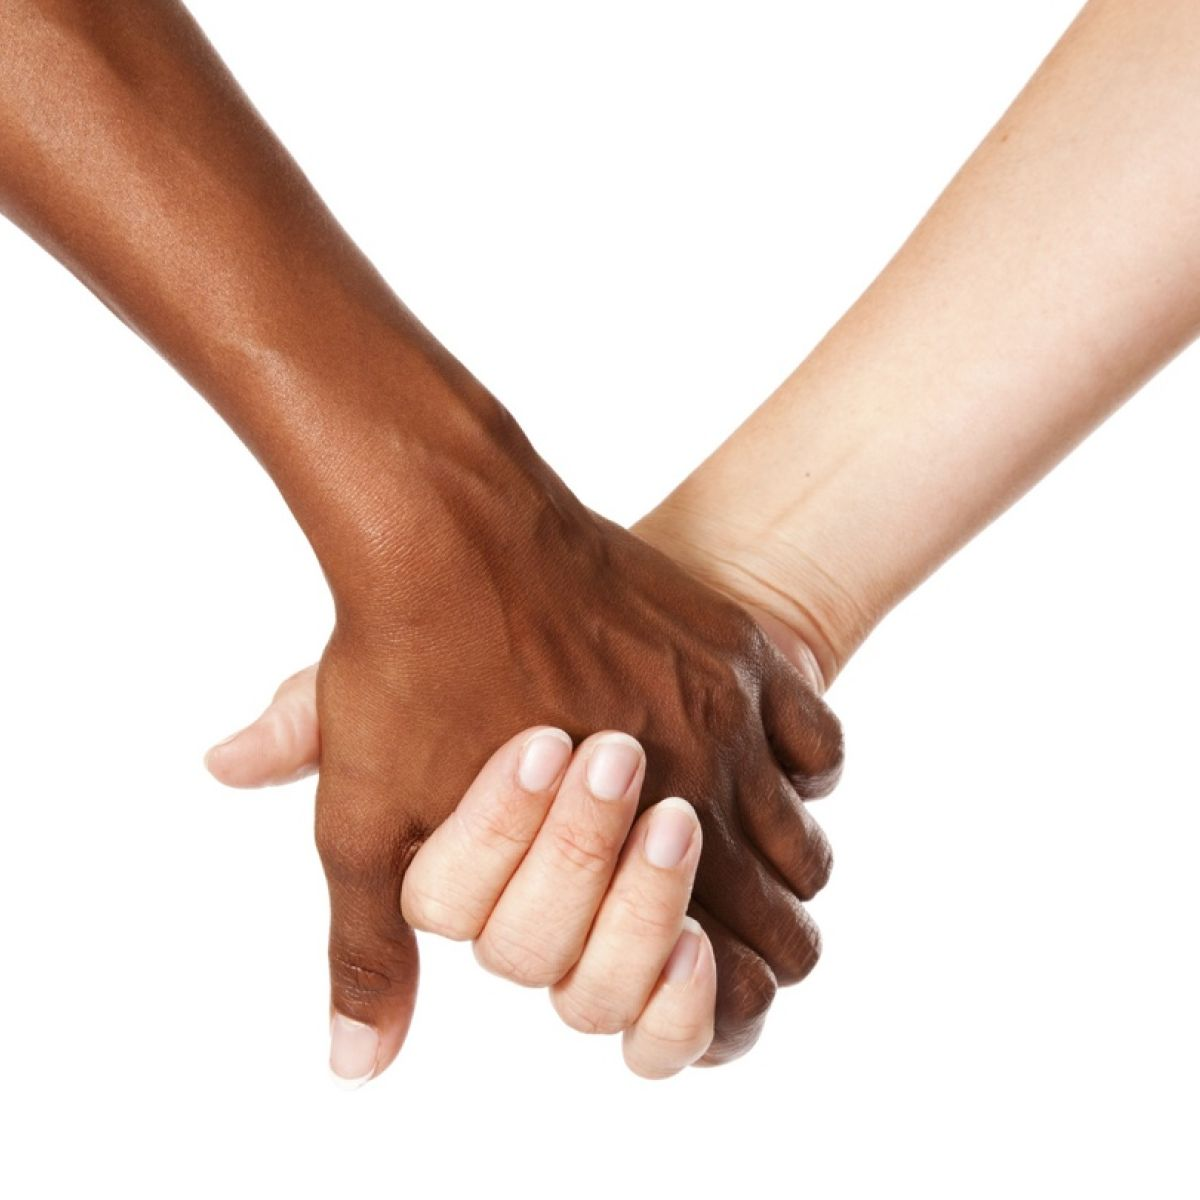 Interracial Dating for Single Men and Women in Meath